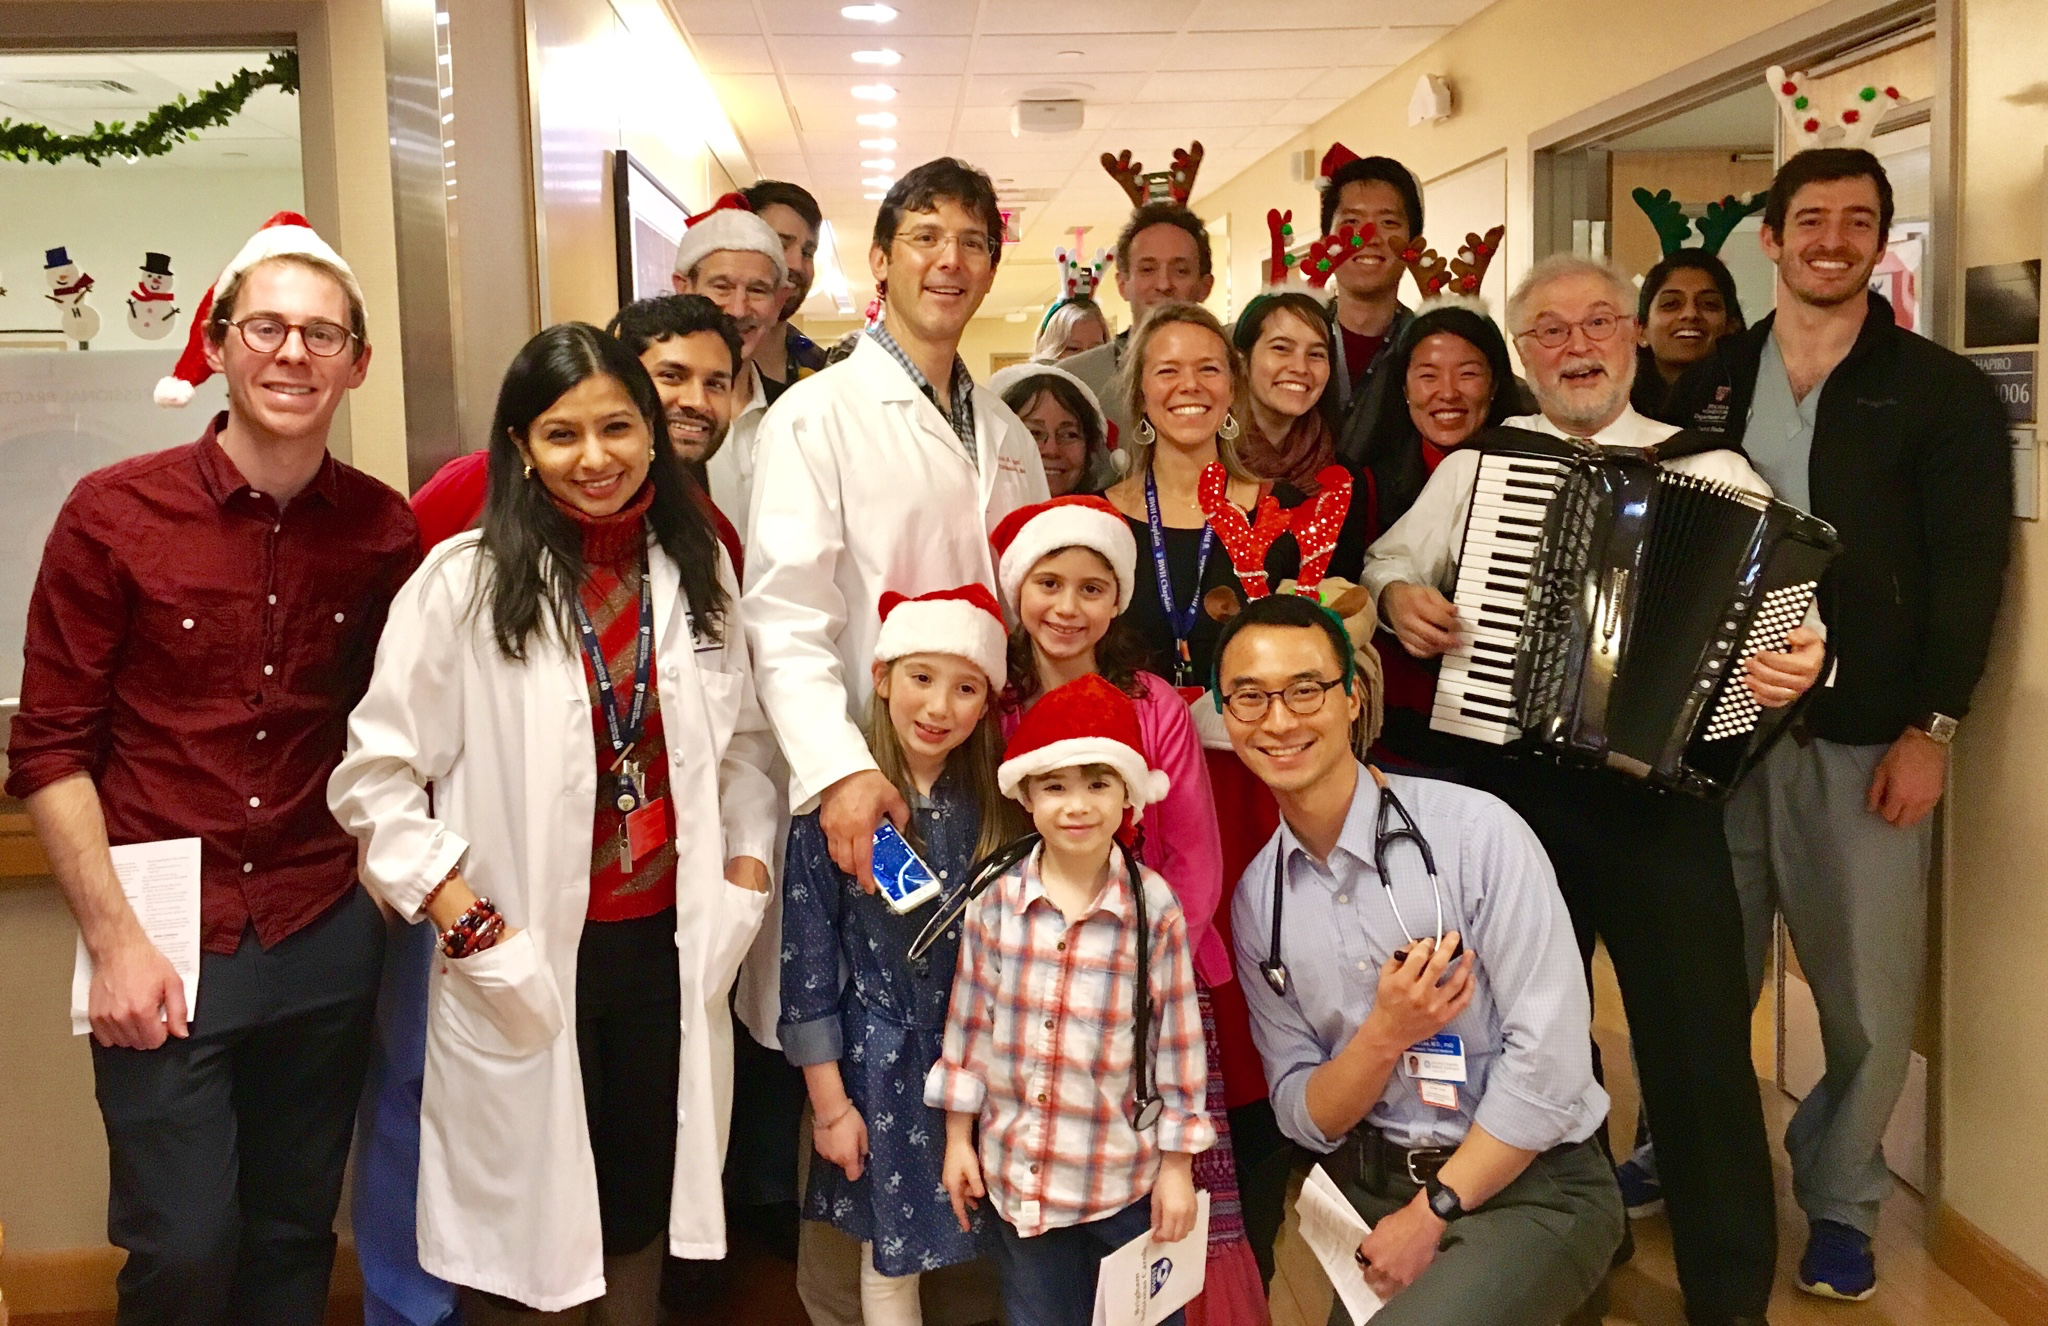 BWHers and their family members gather for a photo after performing holiday carols for patients on Christmas Day.